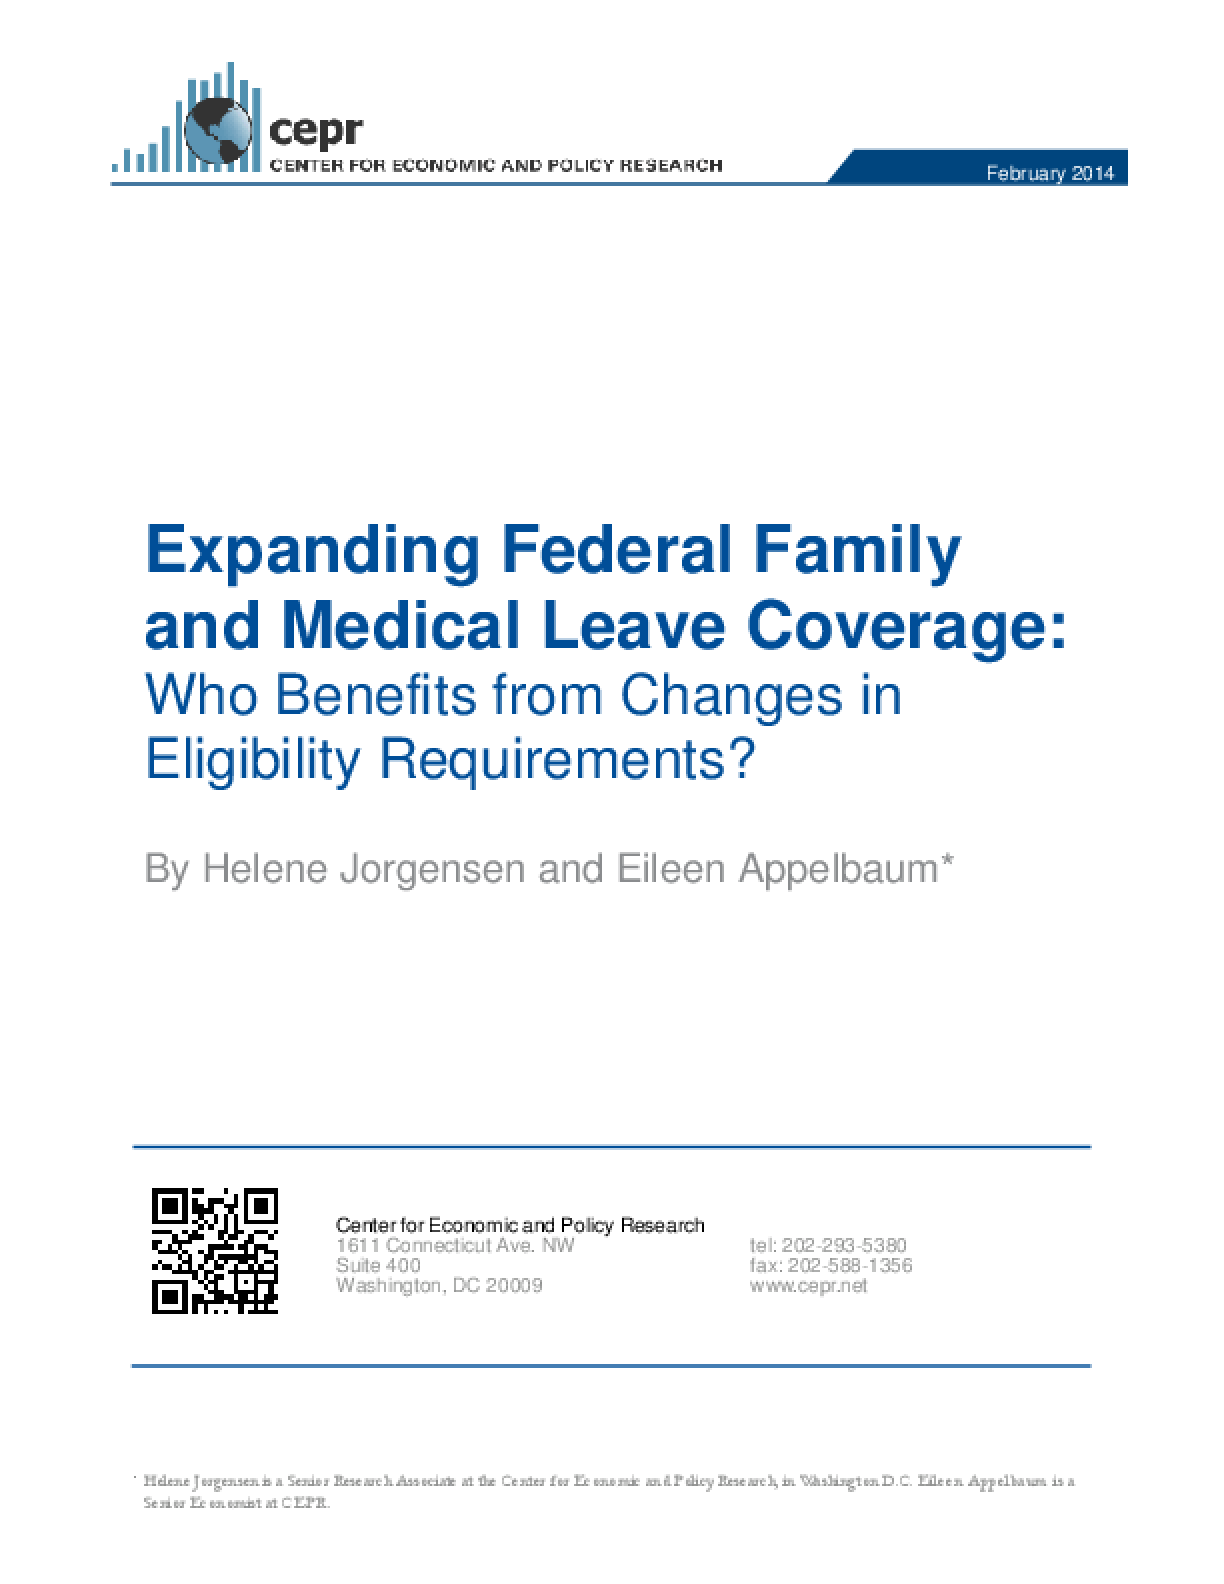 Expanding Federal Family and Medical Leave Coverage: Who Benefits from Changes in Eligibility Requirements?